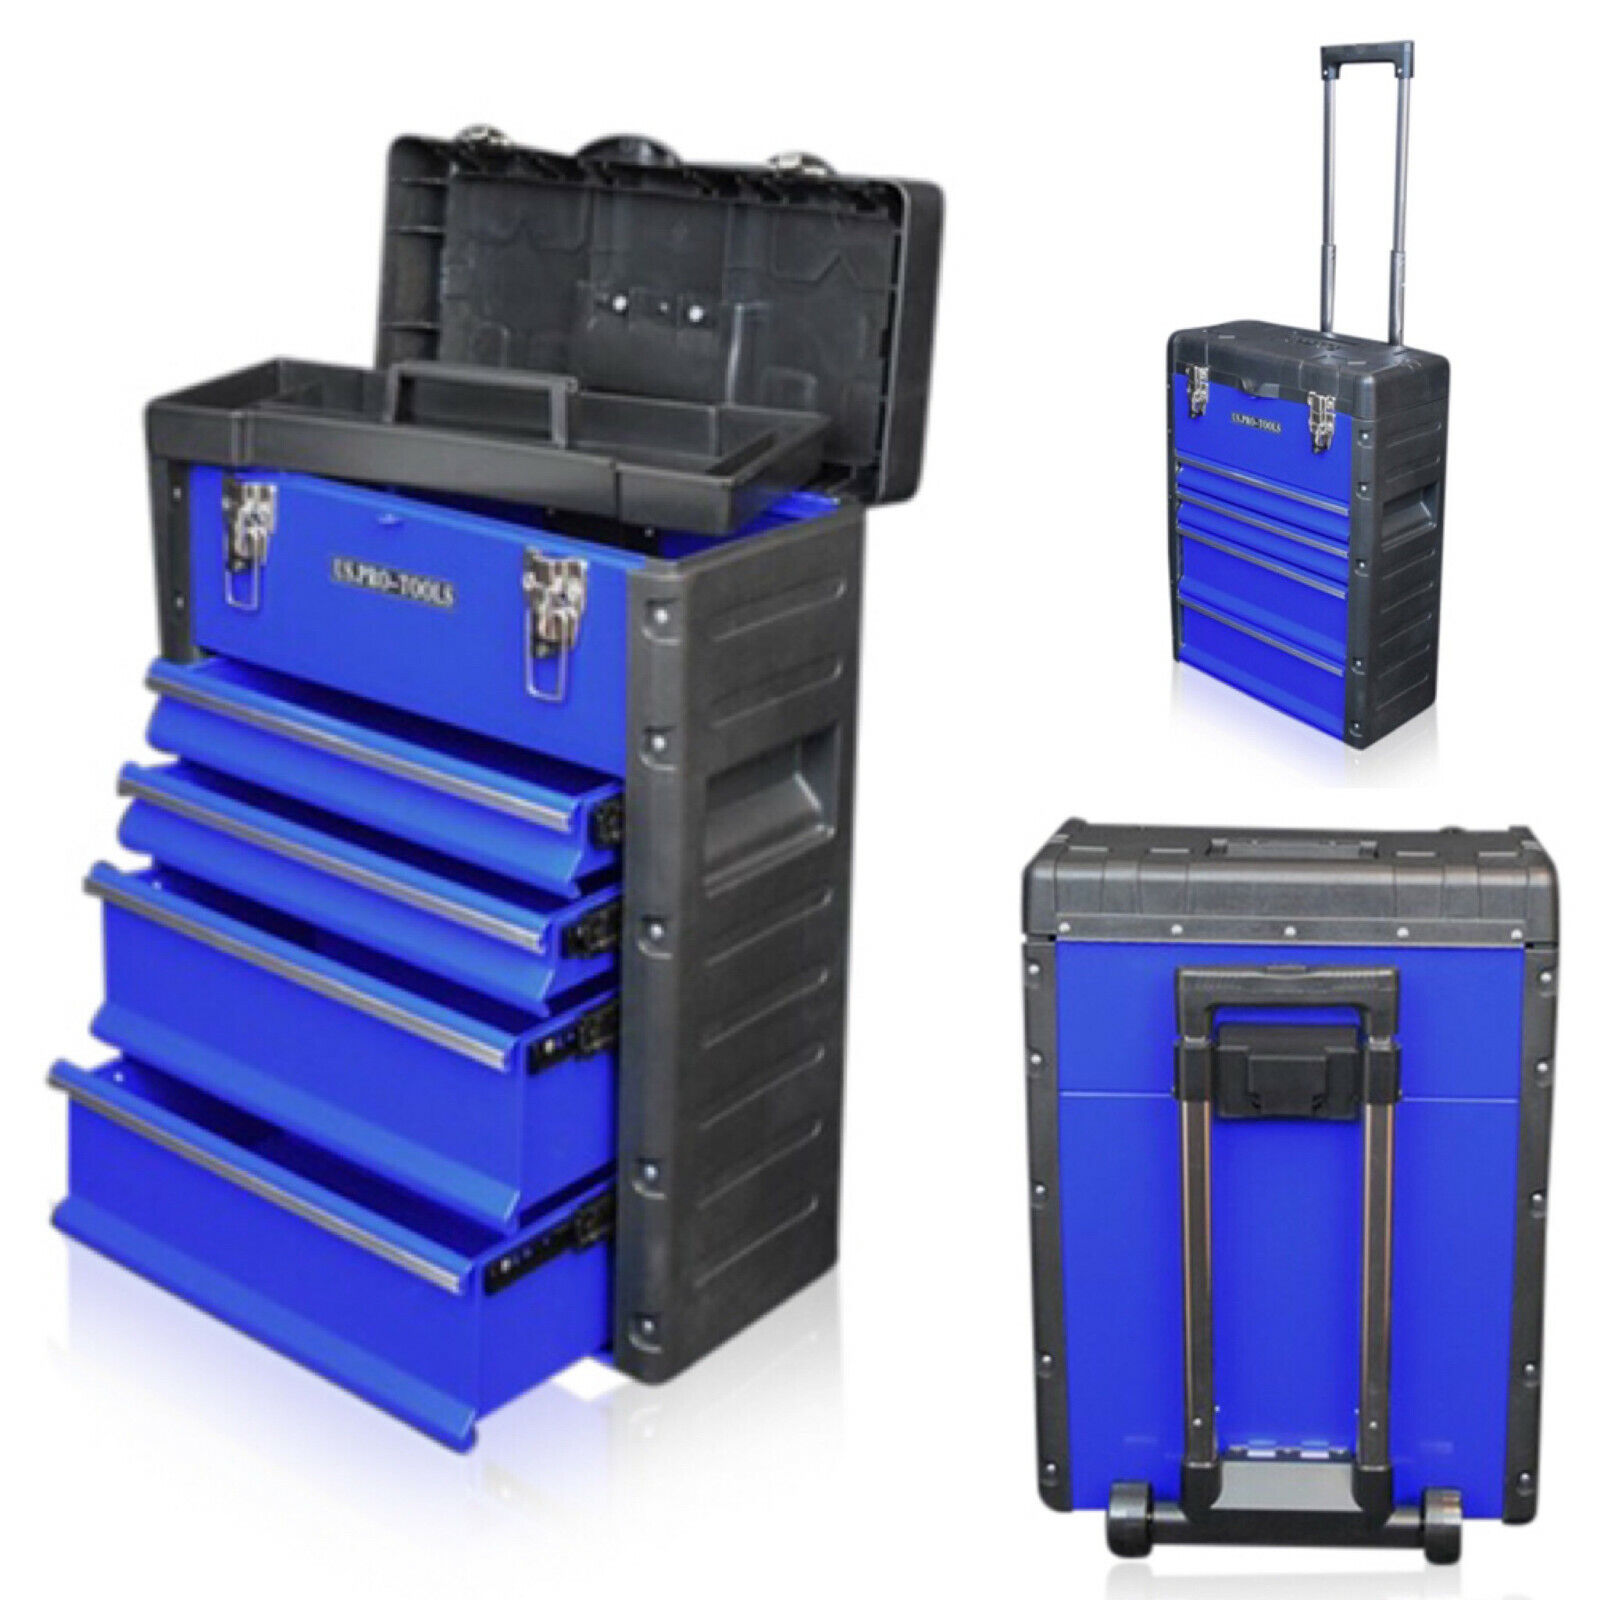 319 US PRO Tools Blue Mobile Roller Chest Trolley Cart ...